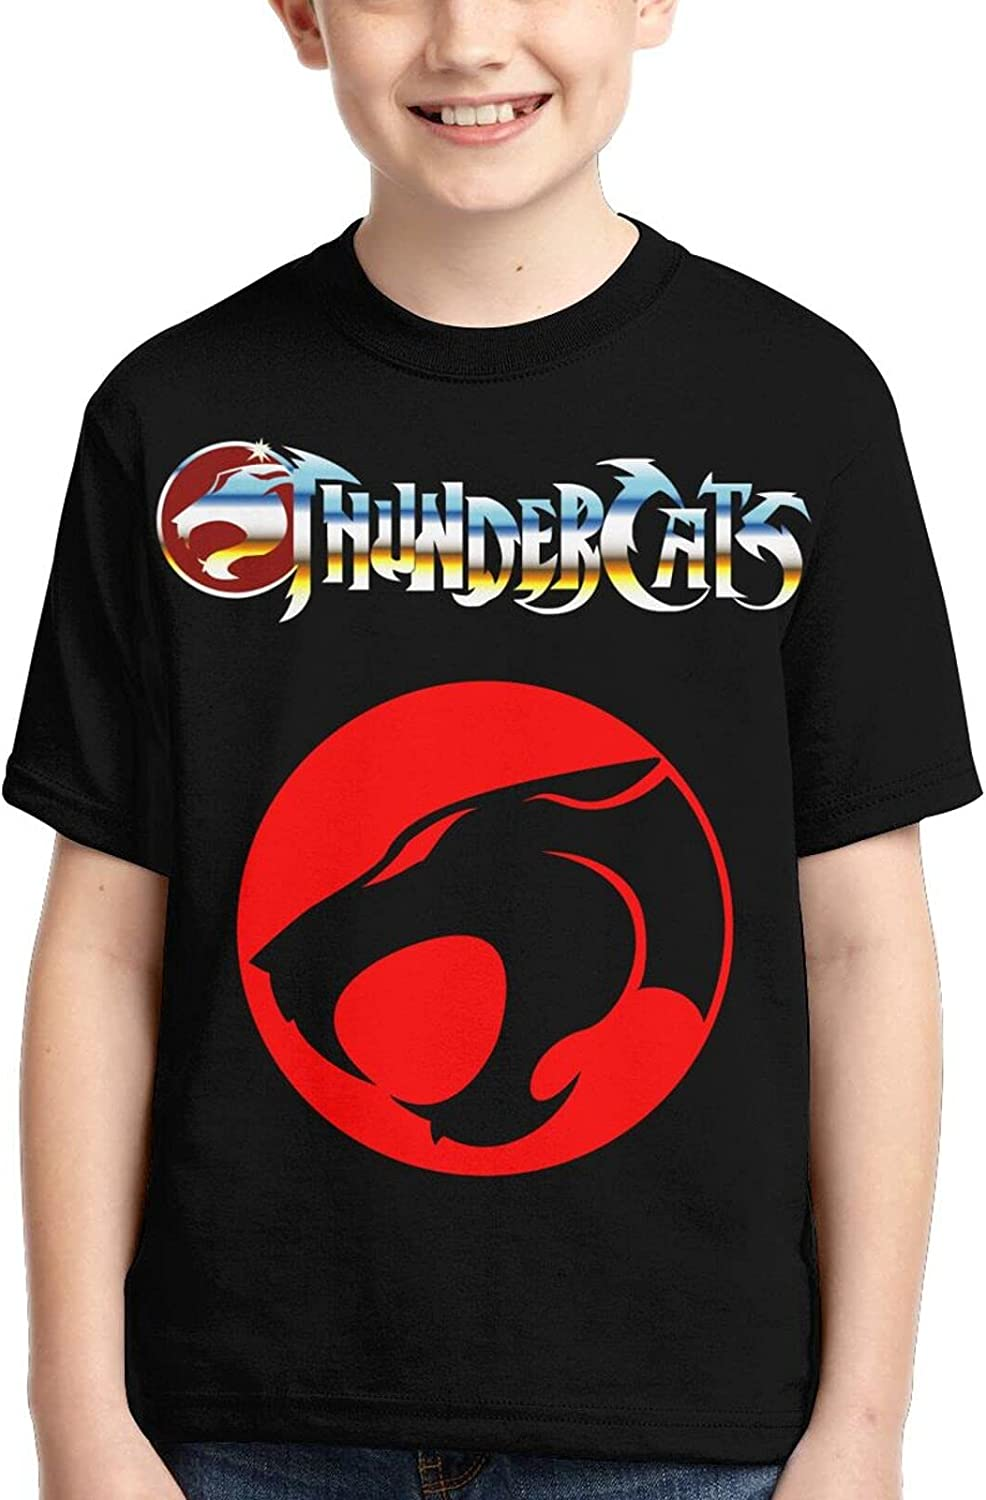 FANPANHE Thundercats Fashion Discount Japan Maker New is also underway Trend Sleeve Short Boys T-Shirt